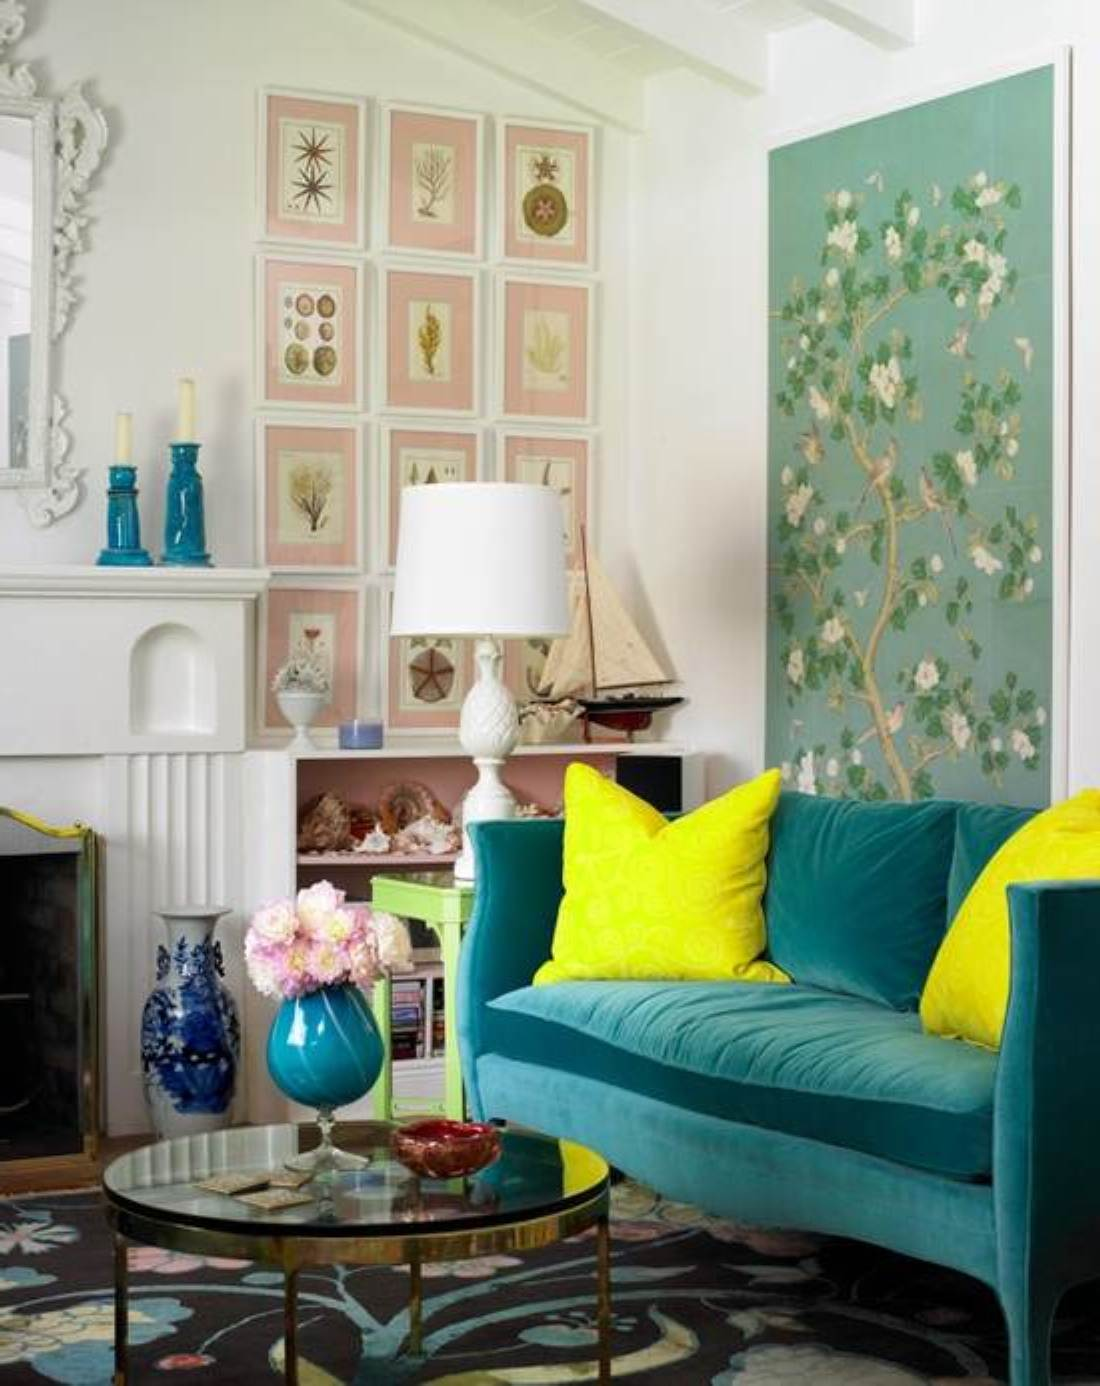 Decorating Small Living Room 30 Amazing Small Spaces Living Room Design Ideas